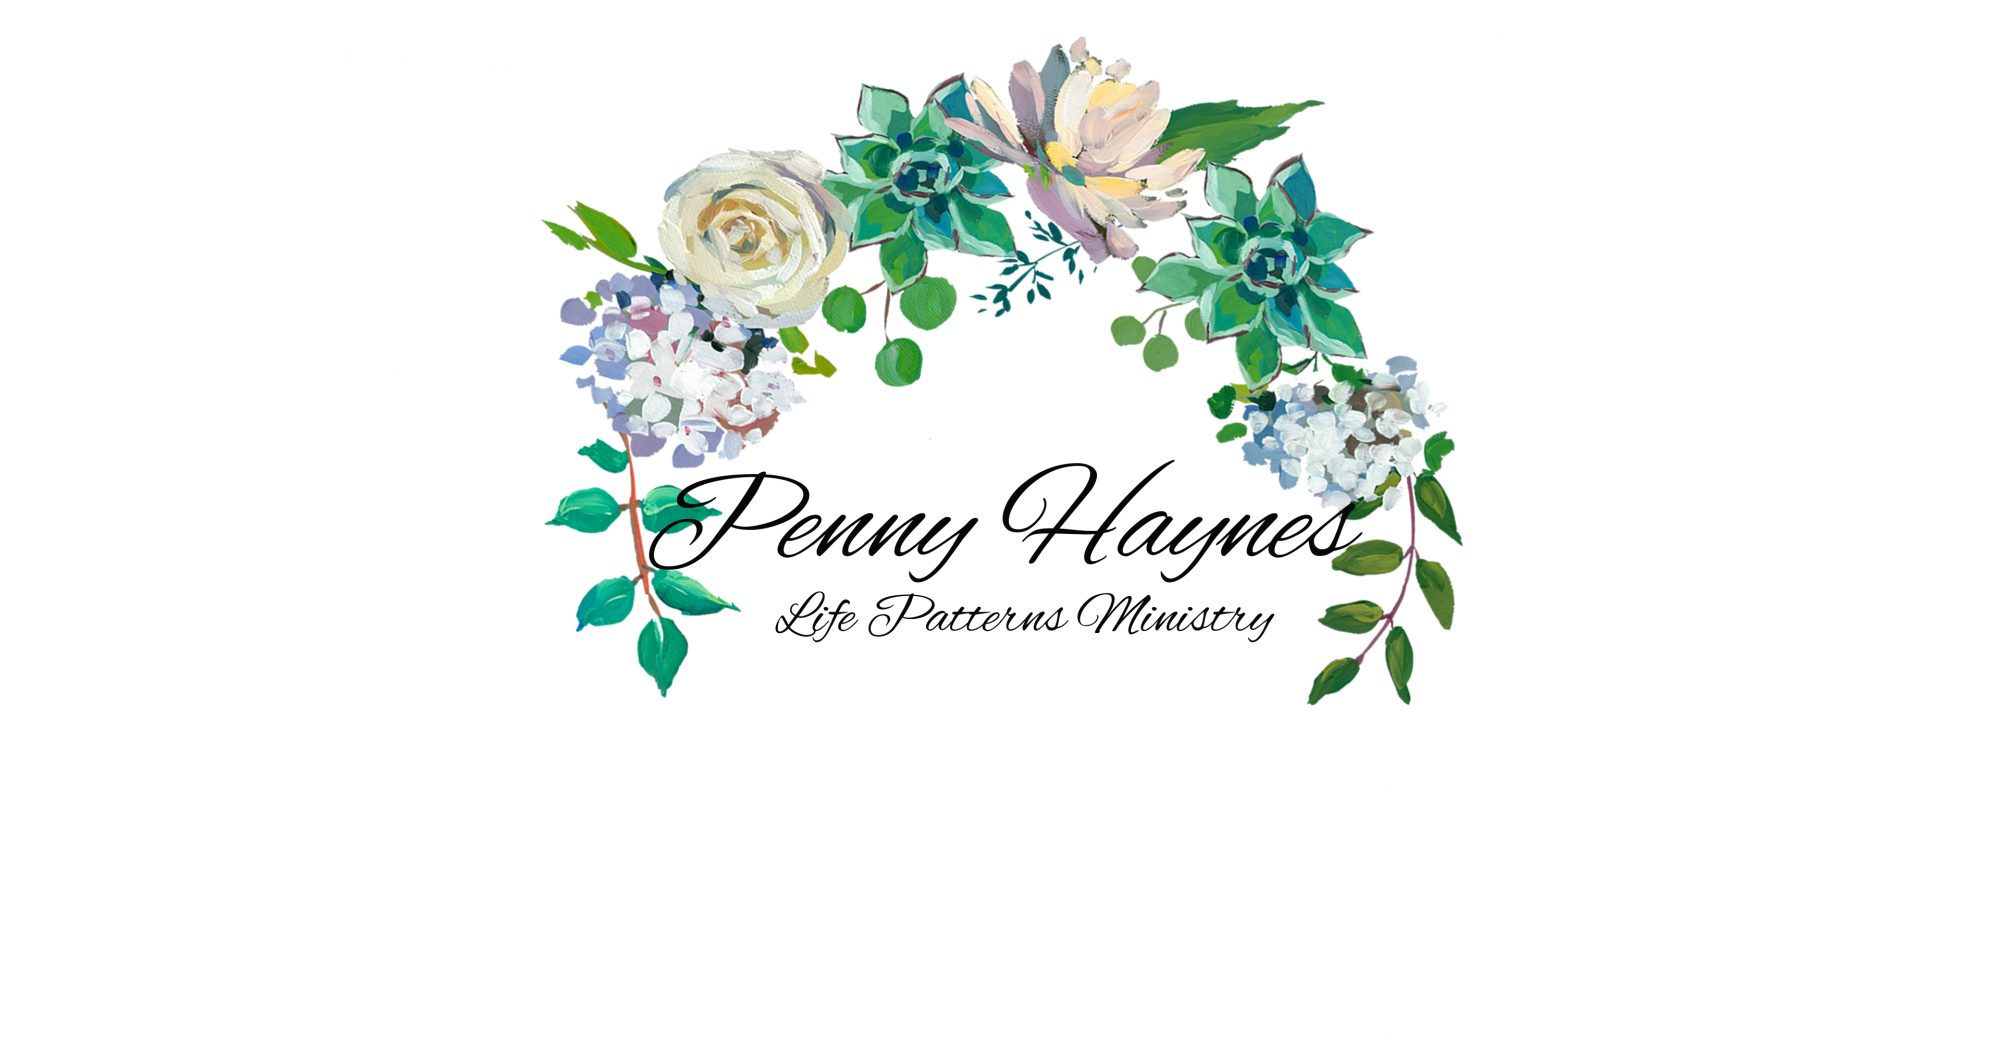 Penny Haynes Life Patterns Ministry